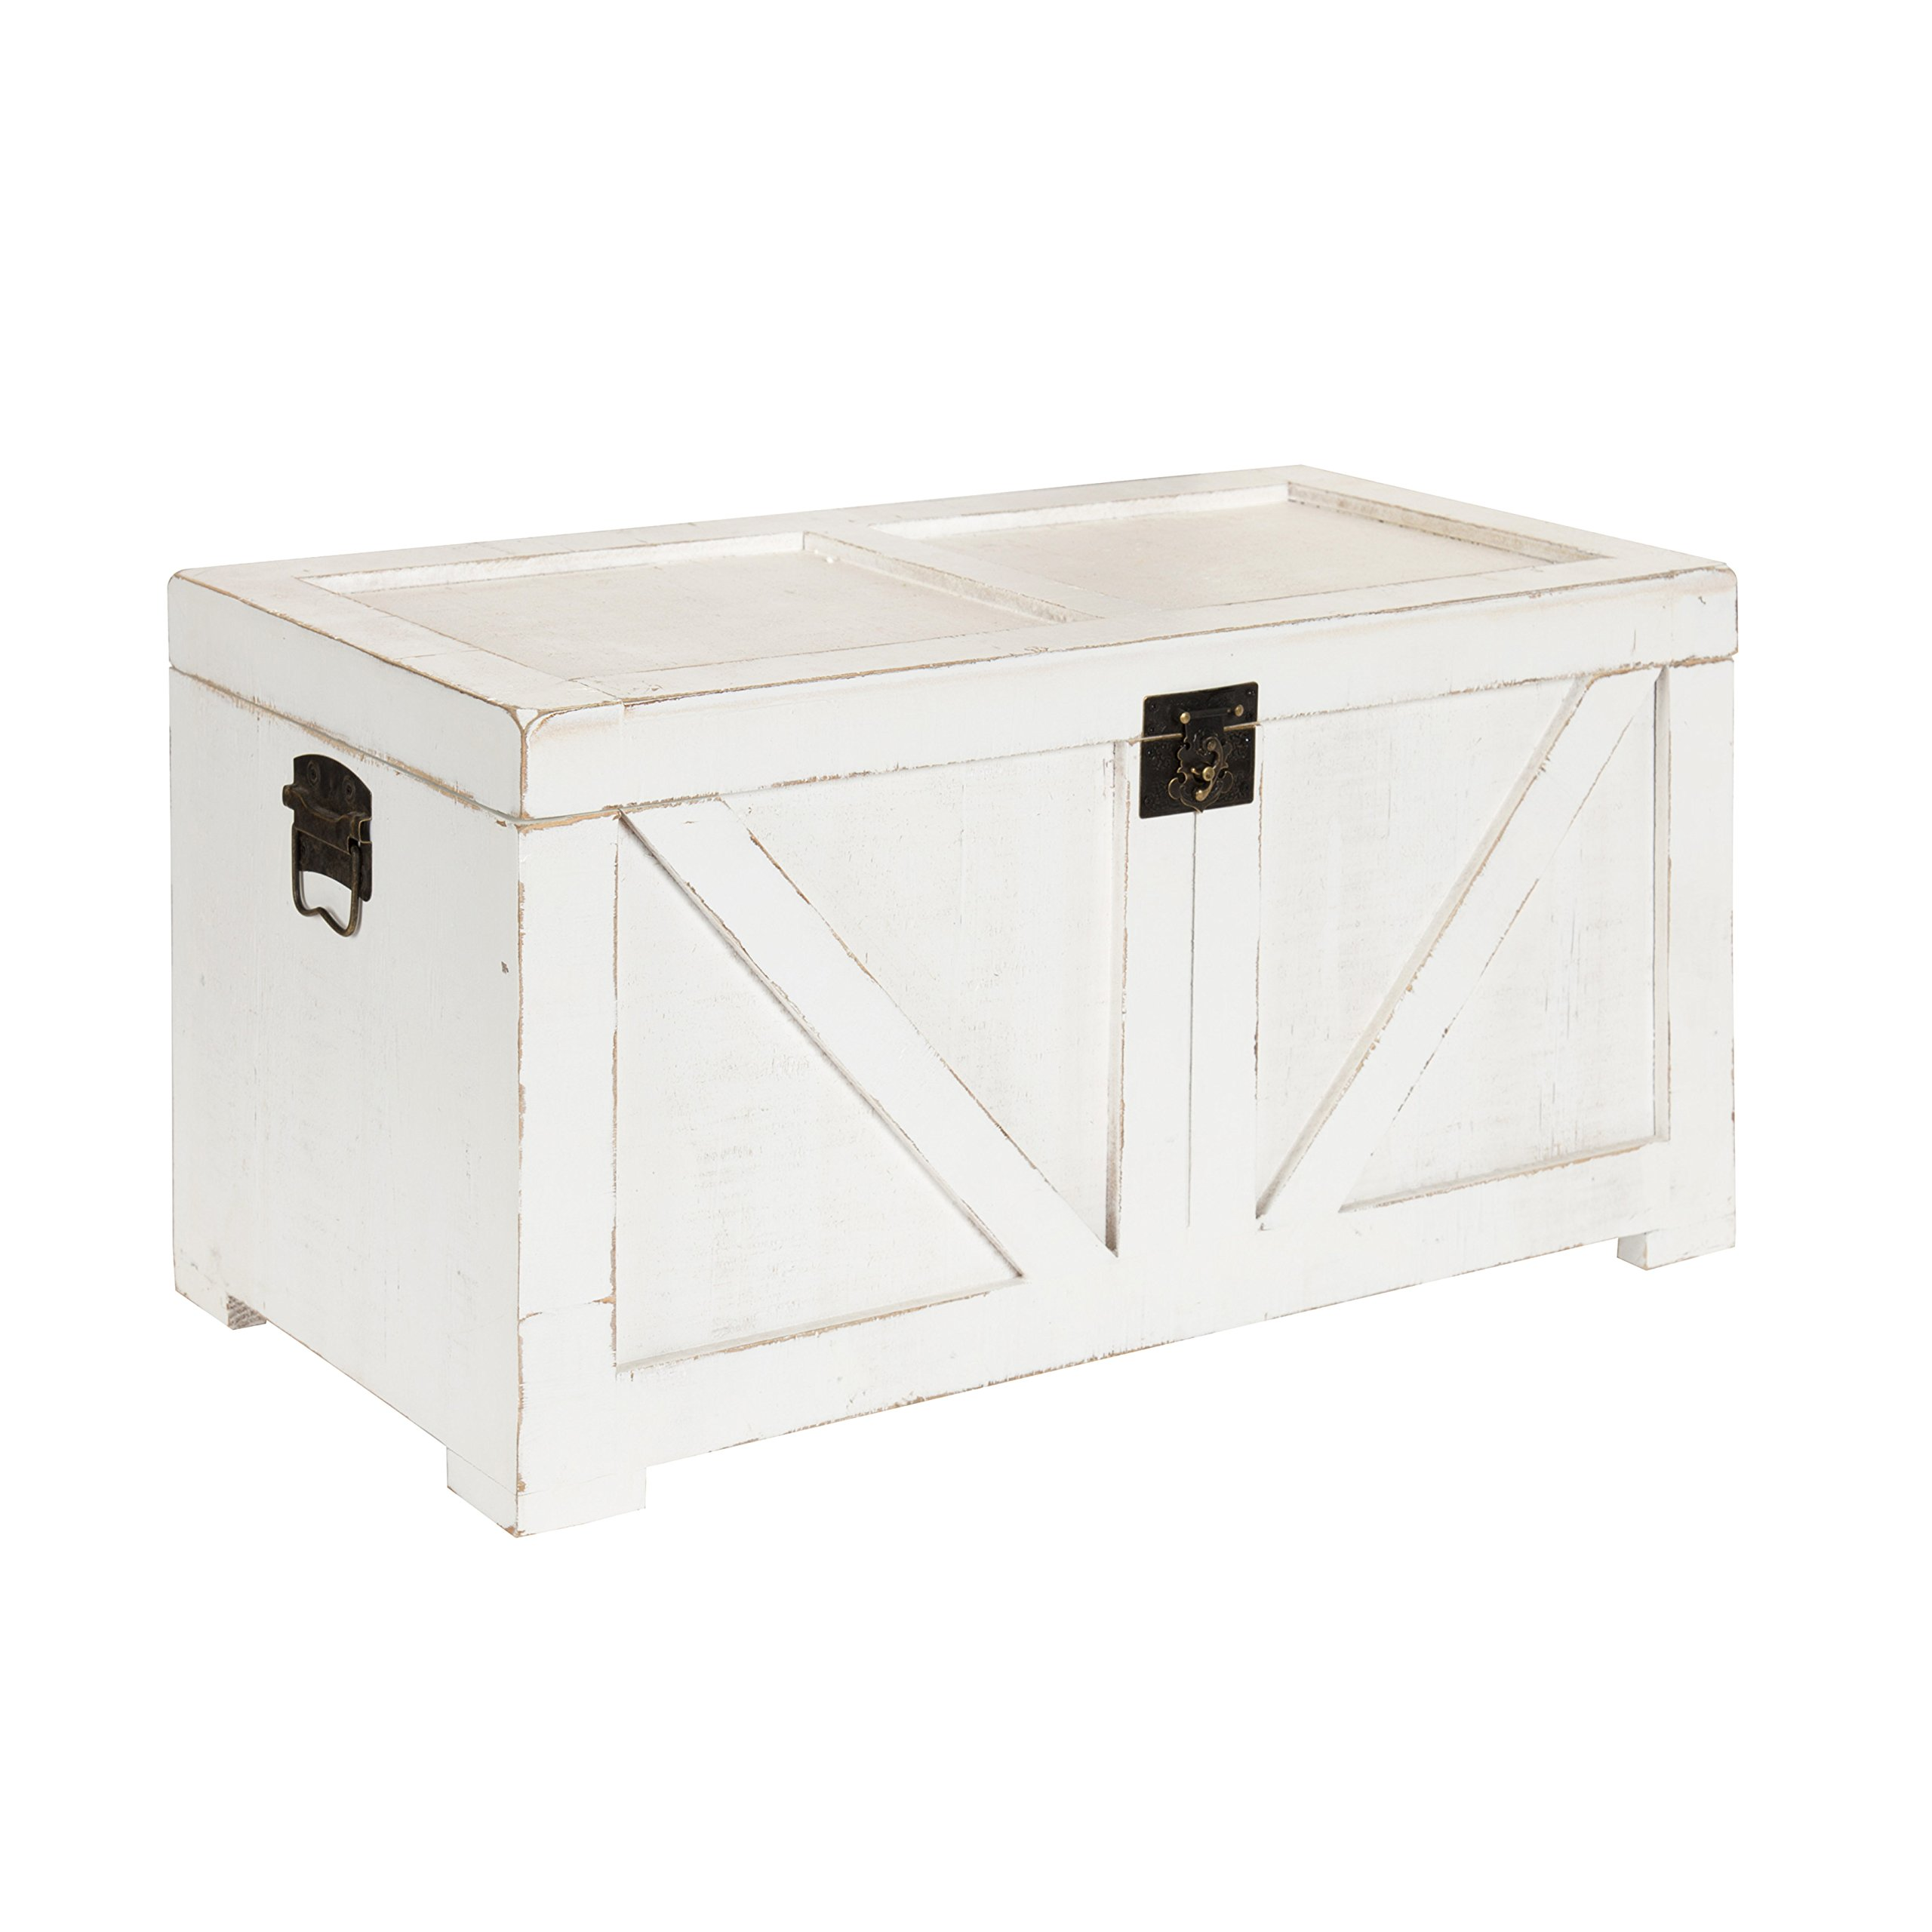 Kate and Laurel 213061 Cates Farmhouse Decorative Wood Trunk 14x27.5x14 White by Kate and Laurel